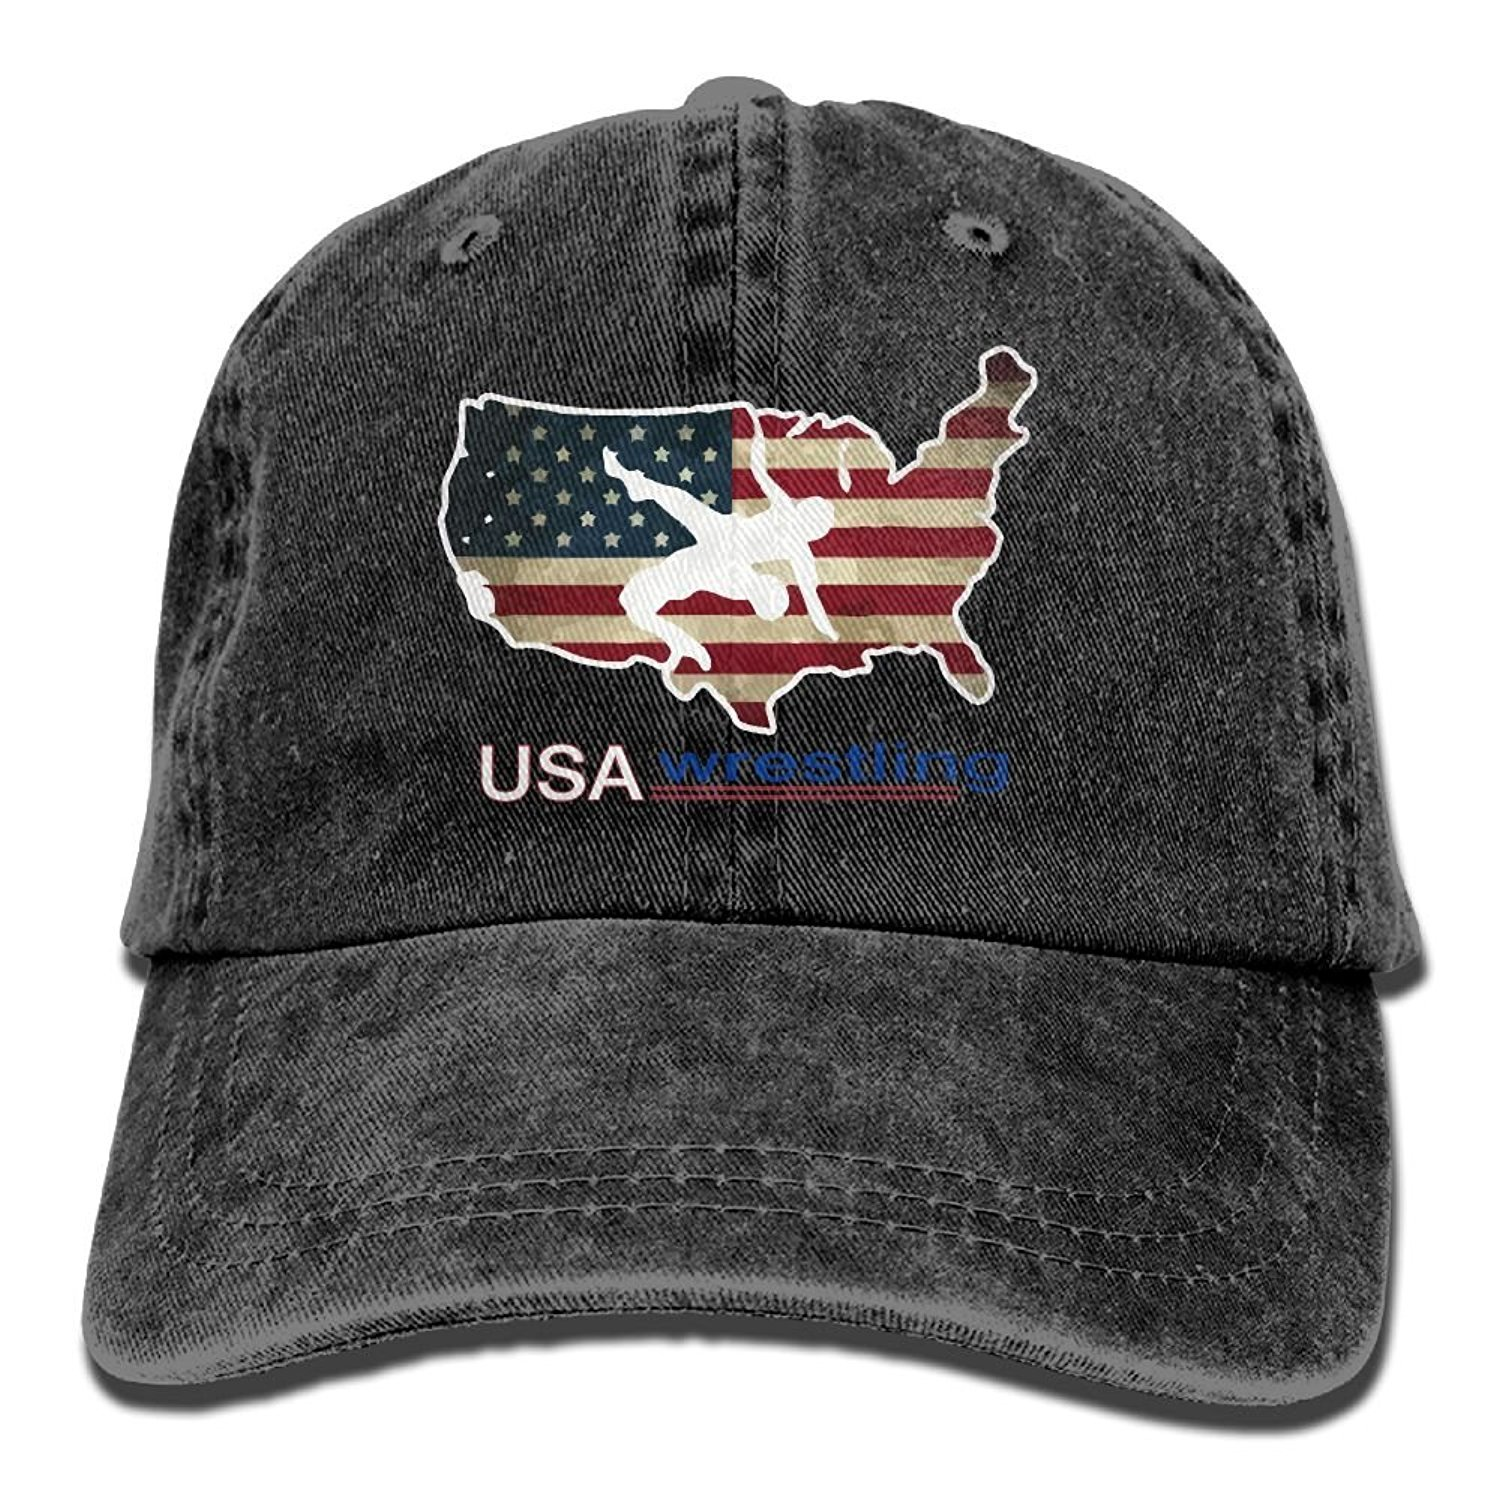 Wagroo Men and Women USA Wrestling Vintage Jeans Baseball Cap by Wagroo